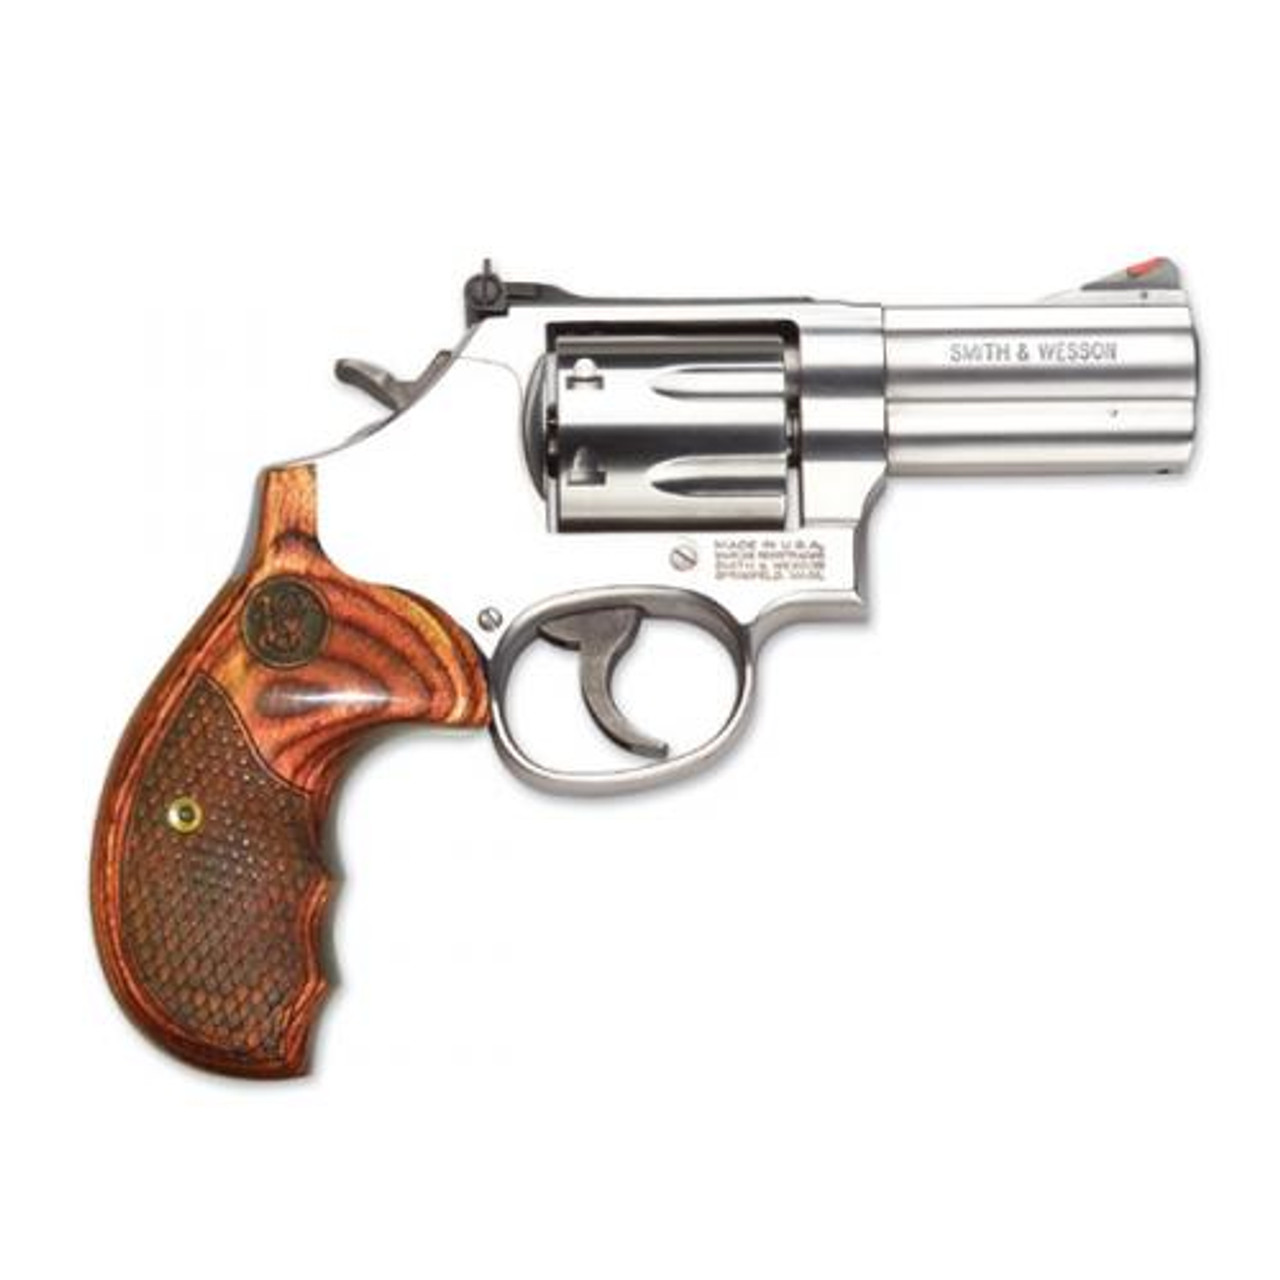 Smith and Wesson 686 Plus Deluxe CALIFORNIA LEGAL - .357